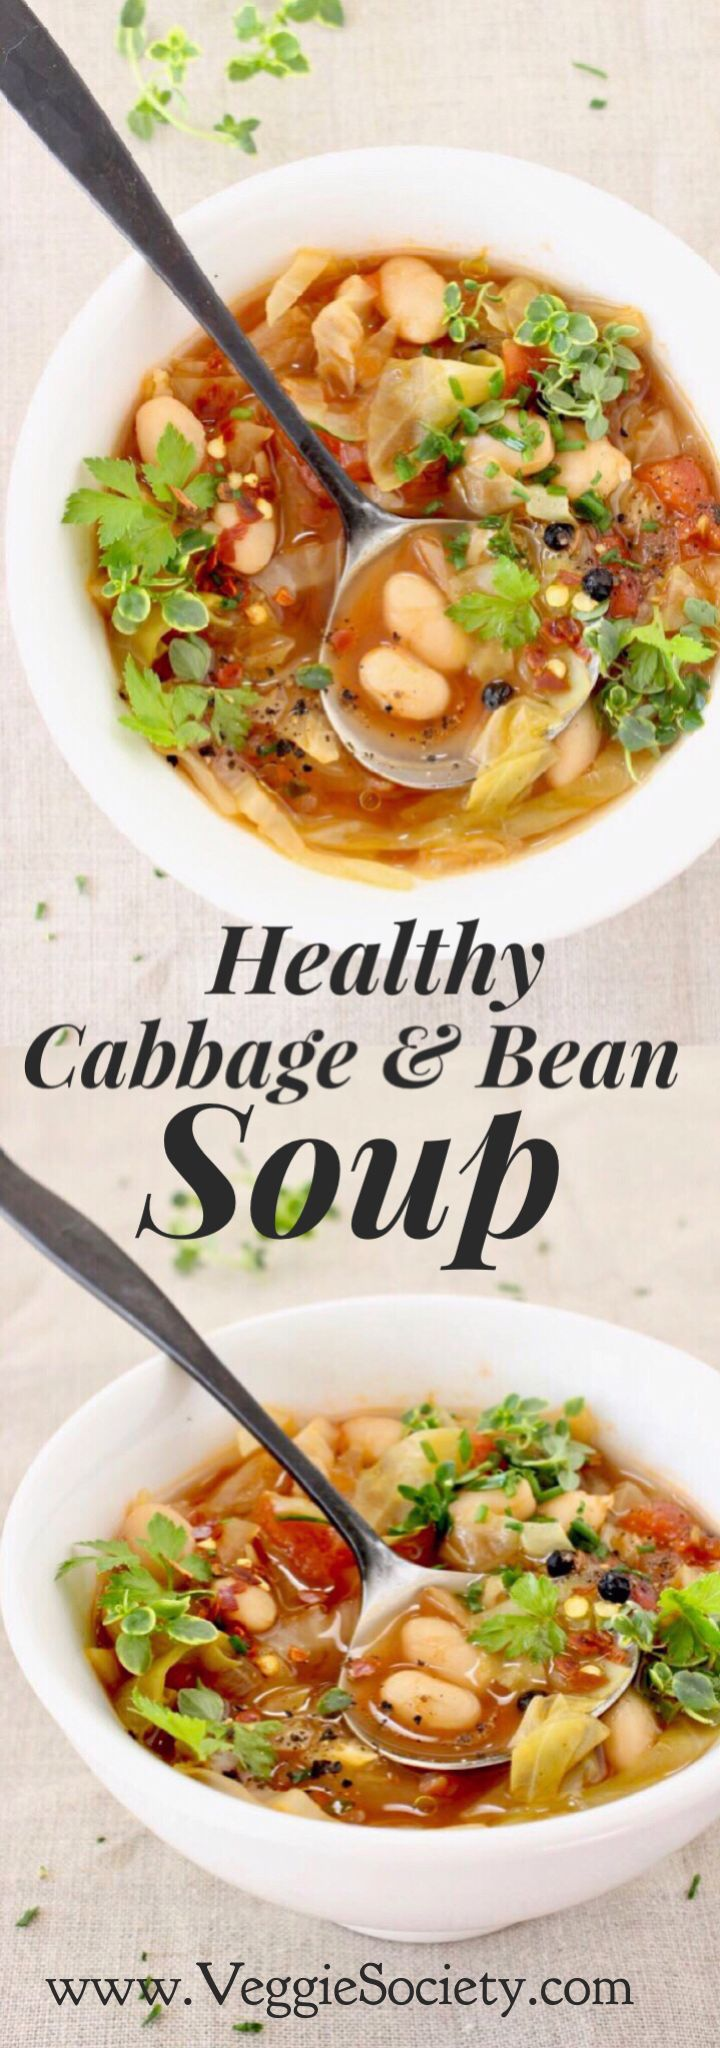 Healthy Cabbage and White Bean Soup Recipe with Italian flair from cannellini Beans, tomatoes and herbs. Vegan • Gluten-free • Detoxifying • Rich In Fiber & Protein | VeggieSociety.com @VeggieSociety http://eatdojo.com/healthy-soup-recipes-for-weight-loss-easy-yummy/